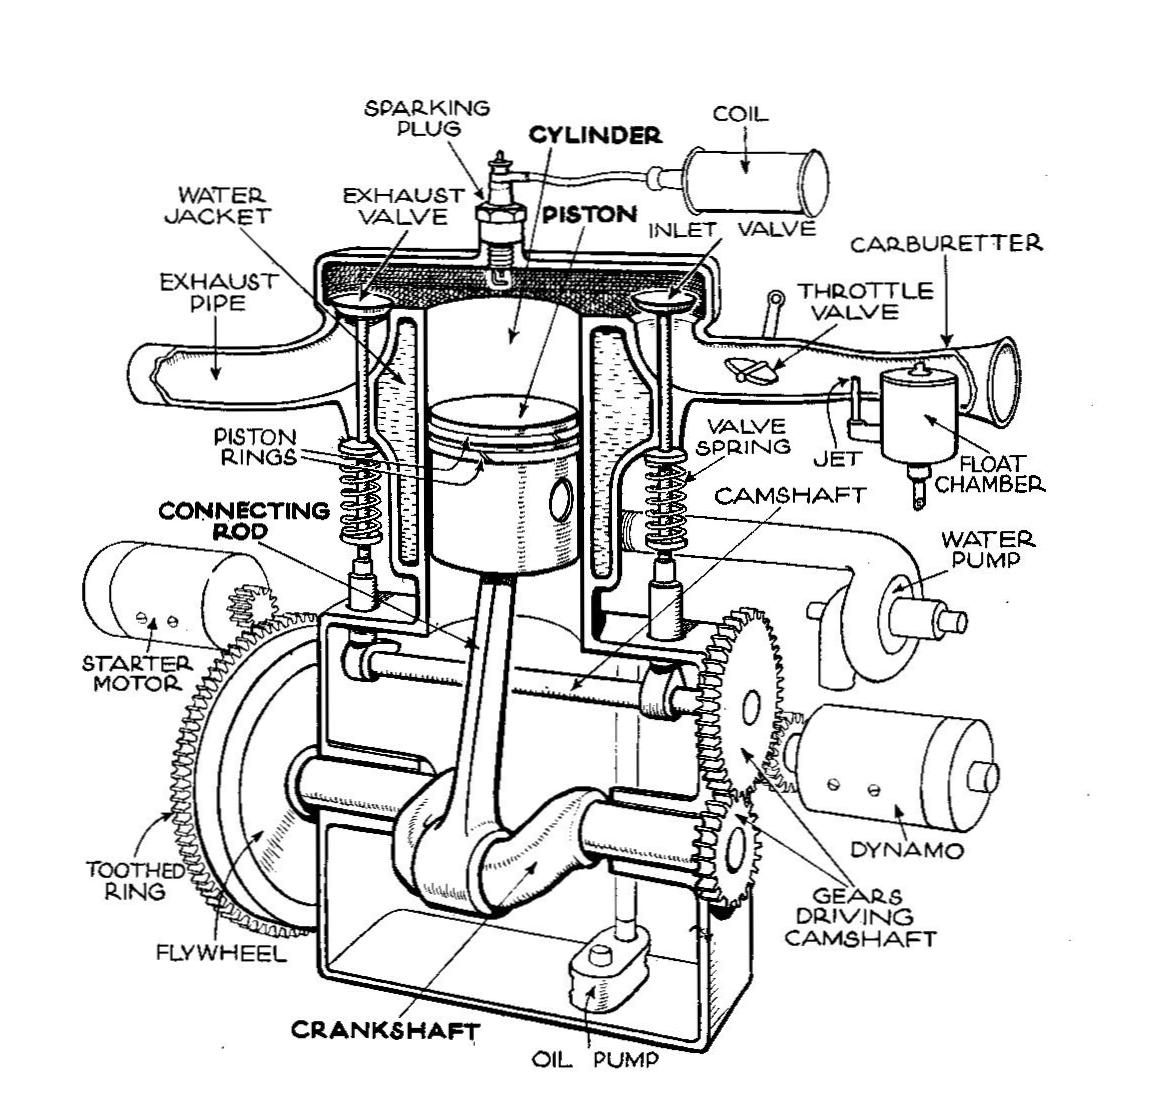 T Head engine also 2 Stroke Carb Diagram further Volvo Penta Fuel Injector Schematic likewise Yamaha 5hp Outboard Motor further Gallery. on carburetor 2 stroke wiring diagram